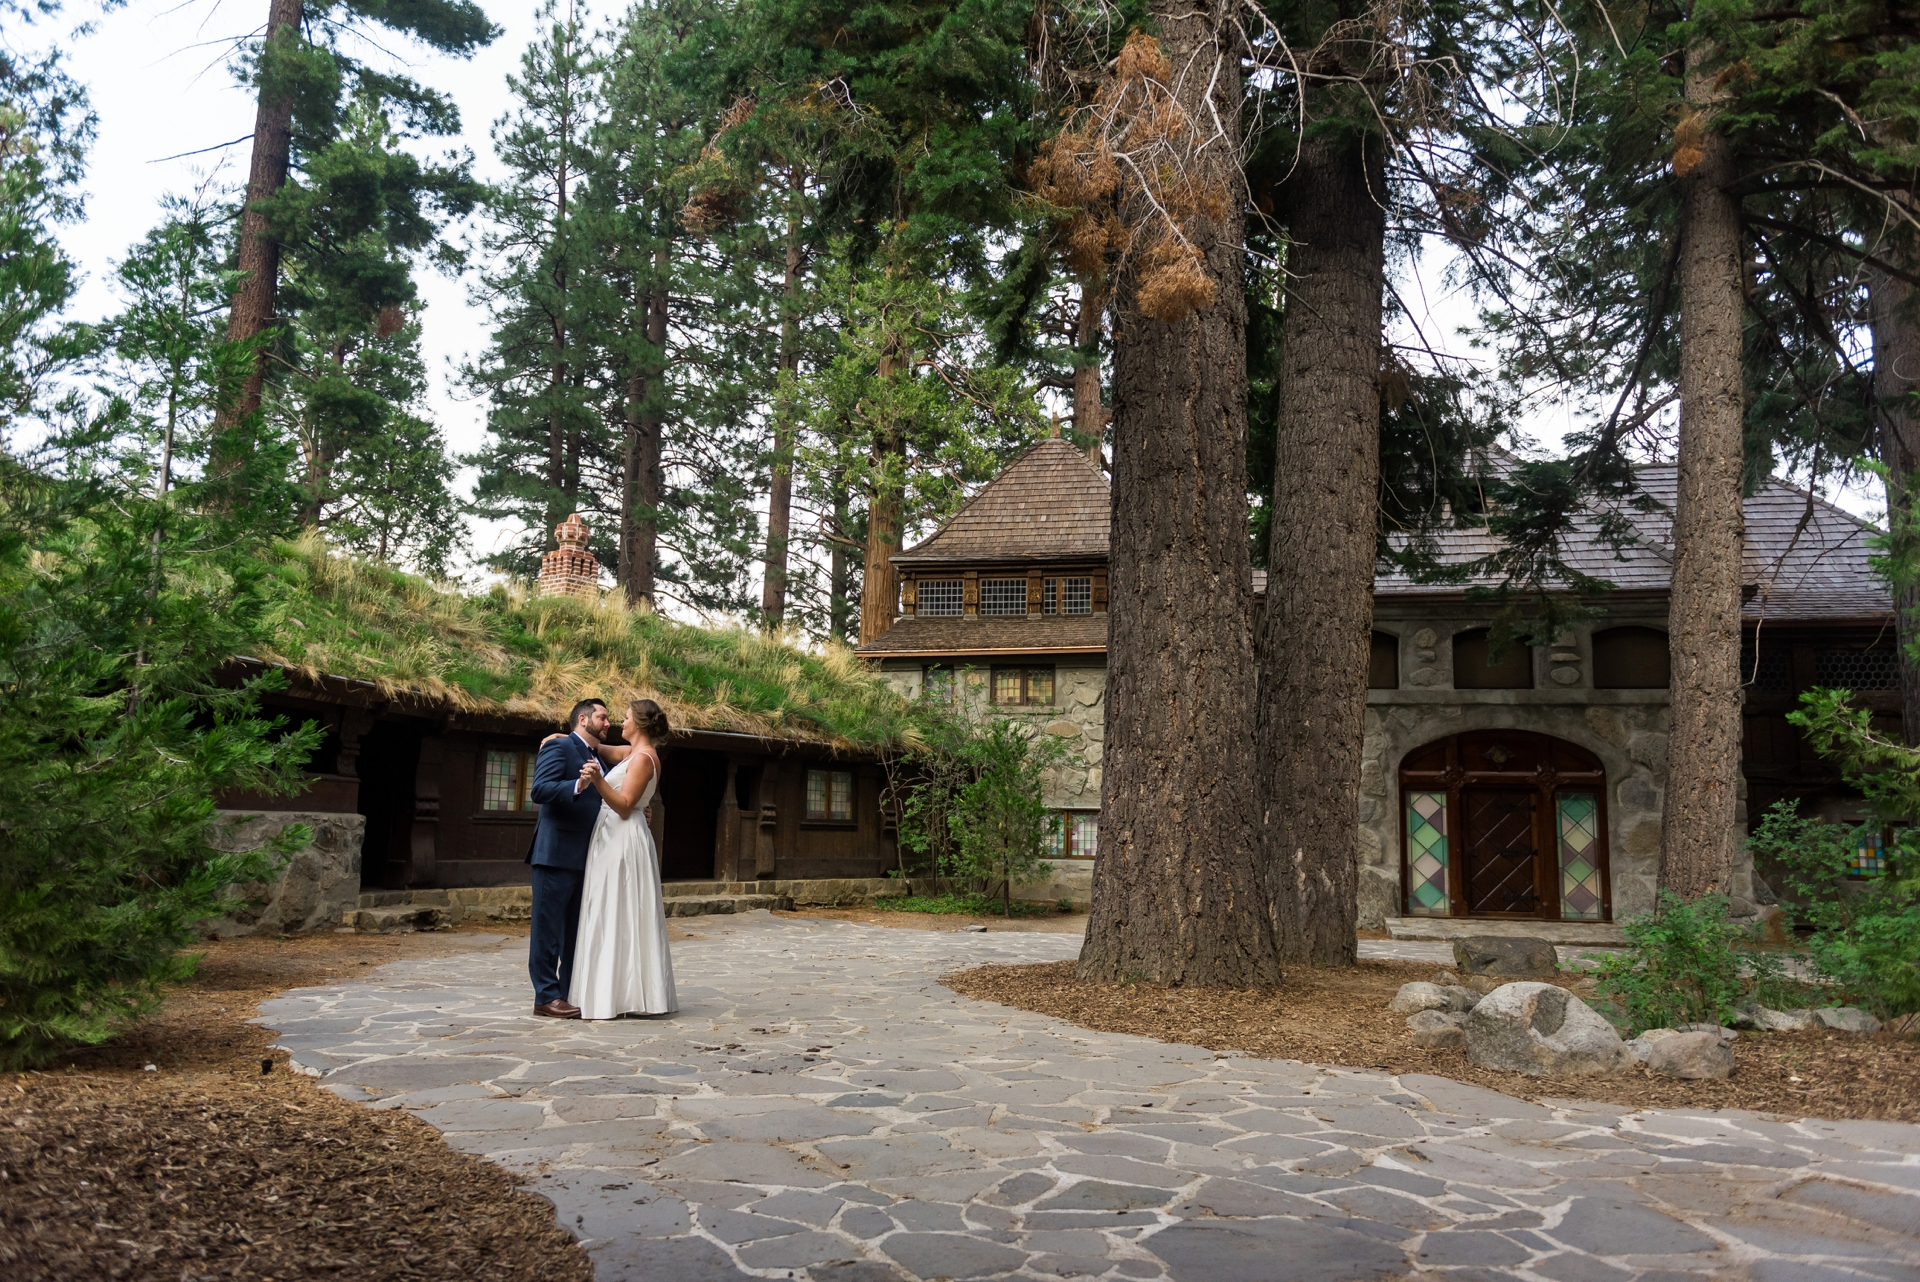 Vikingsholm Castle, Emerald Bay, South Lake Tahoe CA Wedding Pics | The bride and groom share a moment while dancing in the courtyard